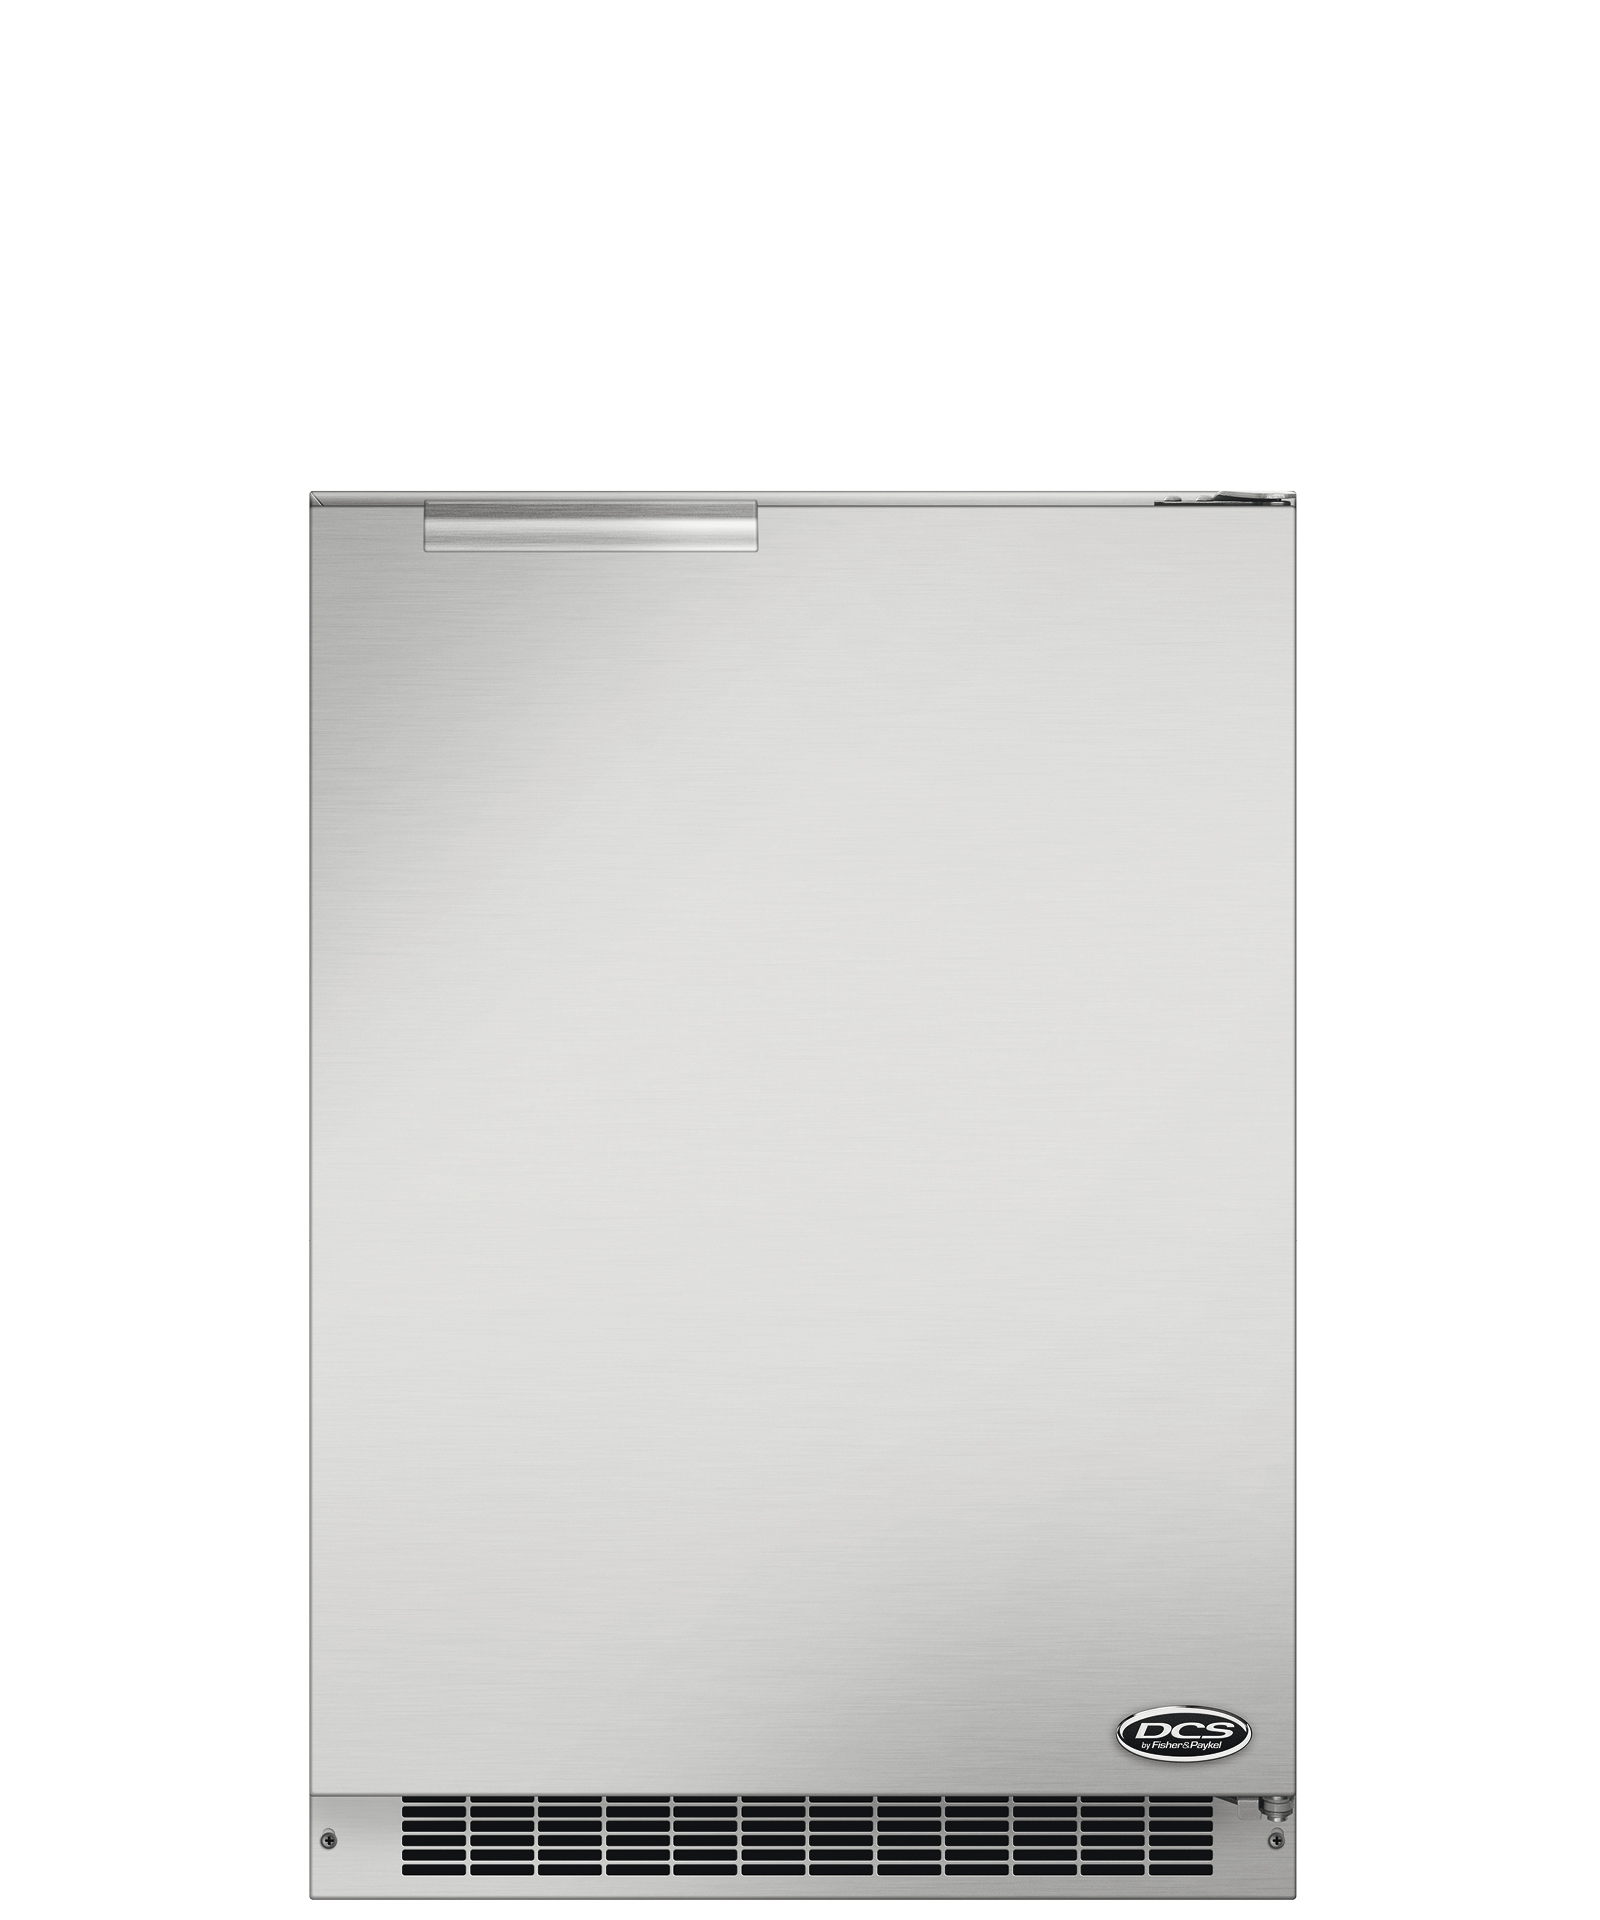 "DCS 24"" Outdoor Refrigerator, Right Hinge"